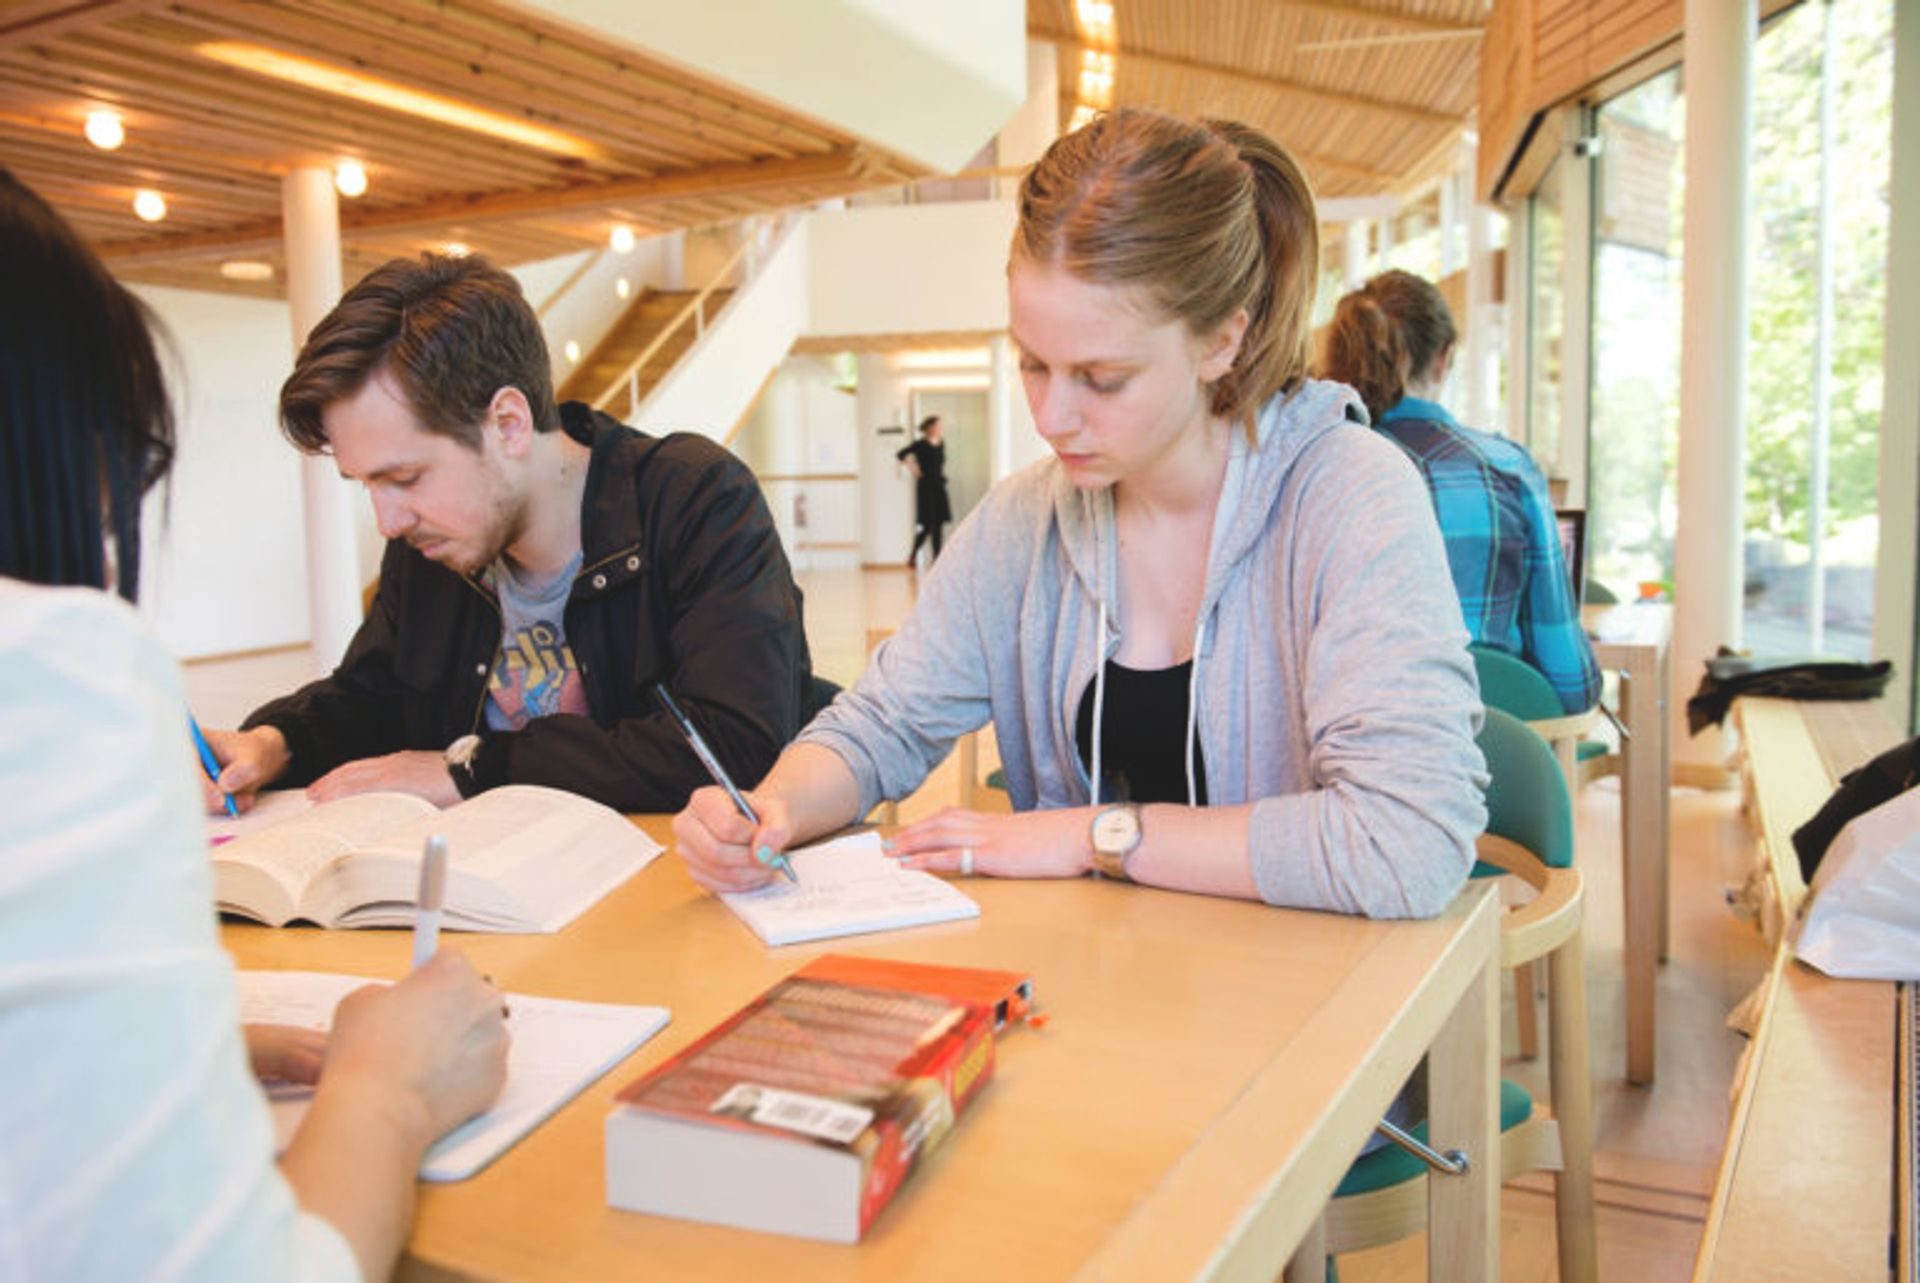 Students sitting at a desk studying.